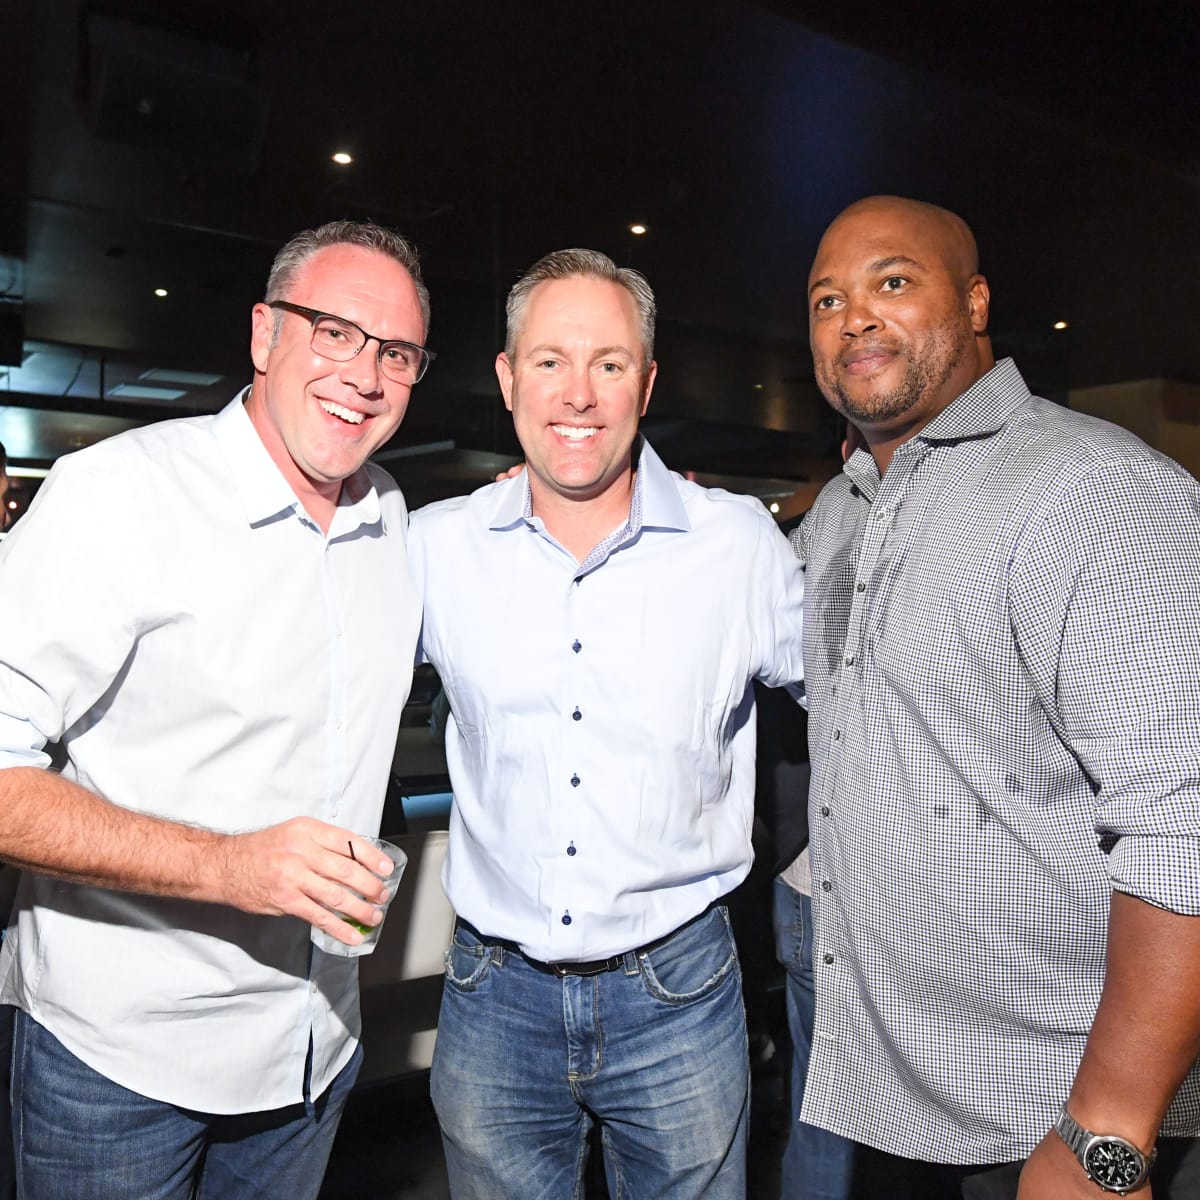 Houston, George Spring Bowling Event, June 2016, Lance Zierlein, Reid Ryan, Kenny Felder